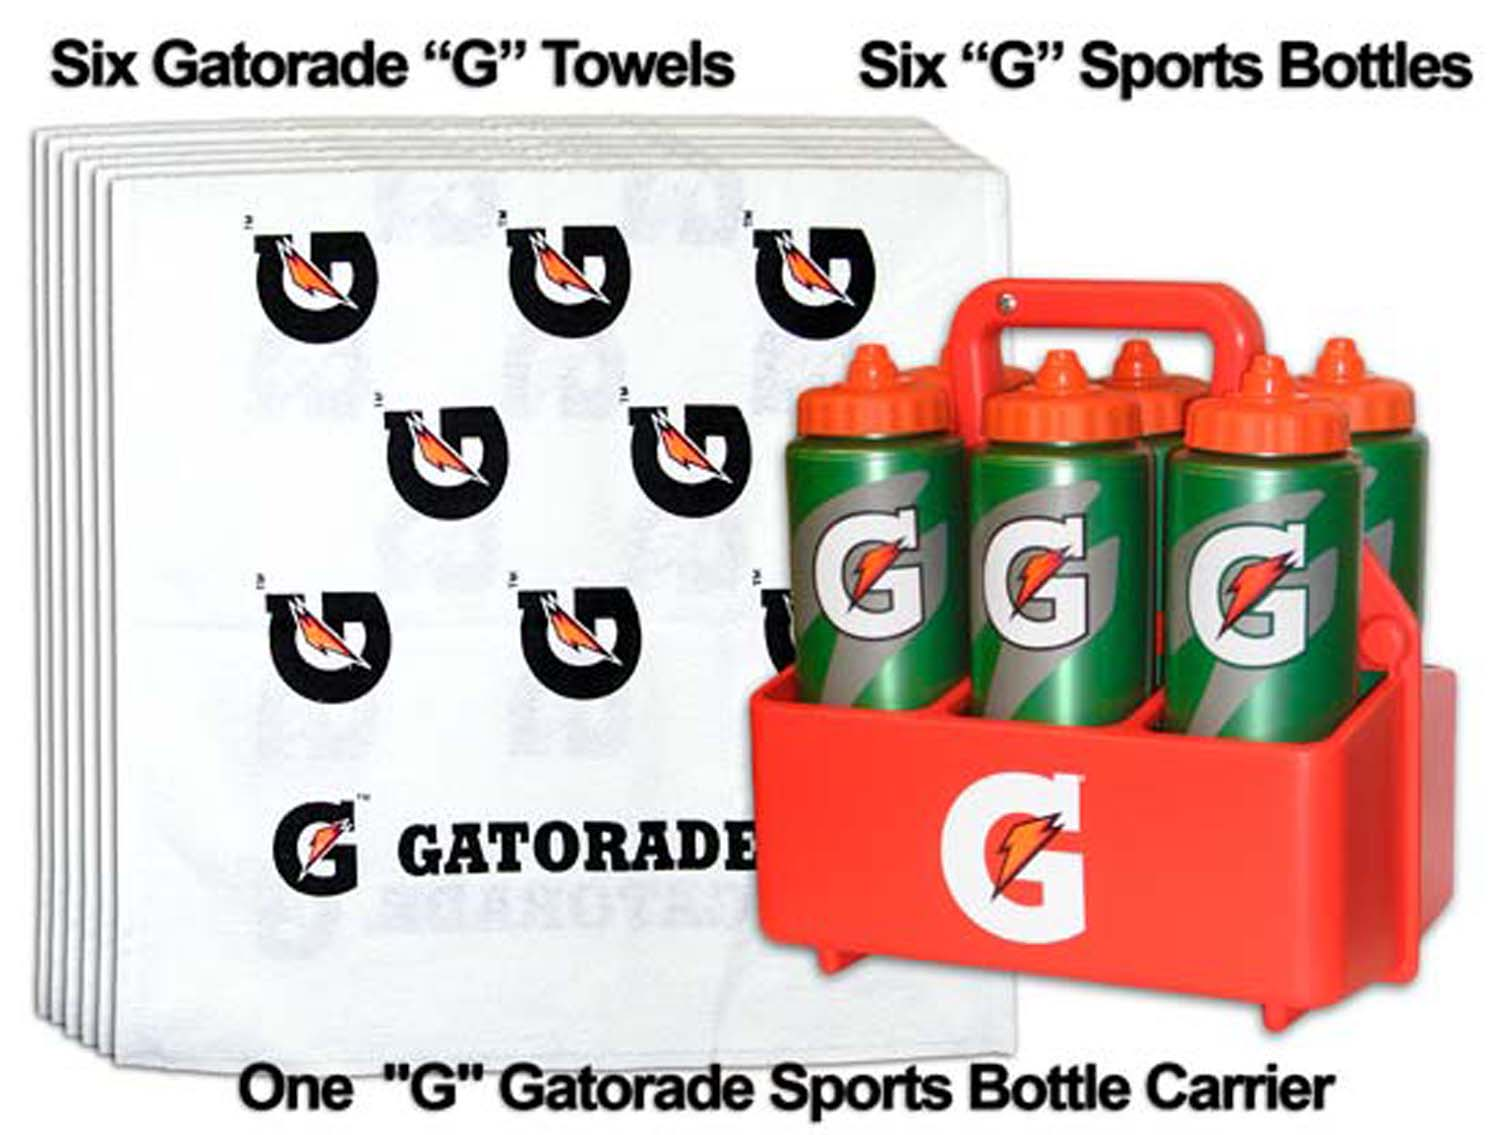 Mini Team Gatorade G Sports Pack = 6 G Bottles; 1 Carrier; And 6 Gatorade 'g' Towels - Set - 59115 - Yoga And Pilates Yogamats Matwash Towels And Rugs 59115